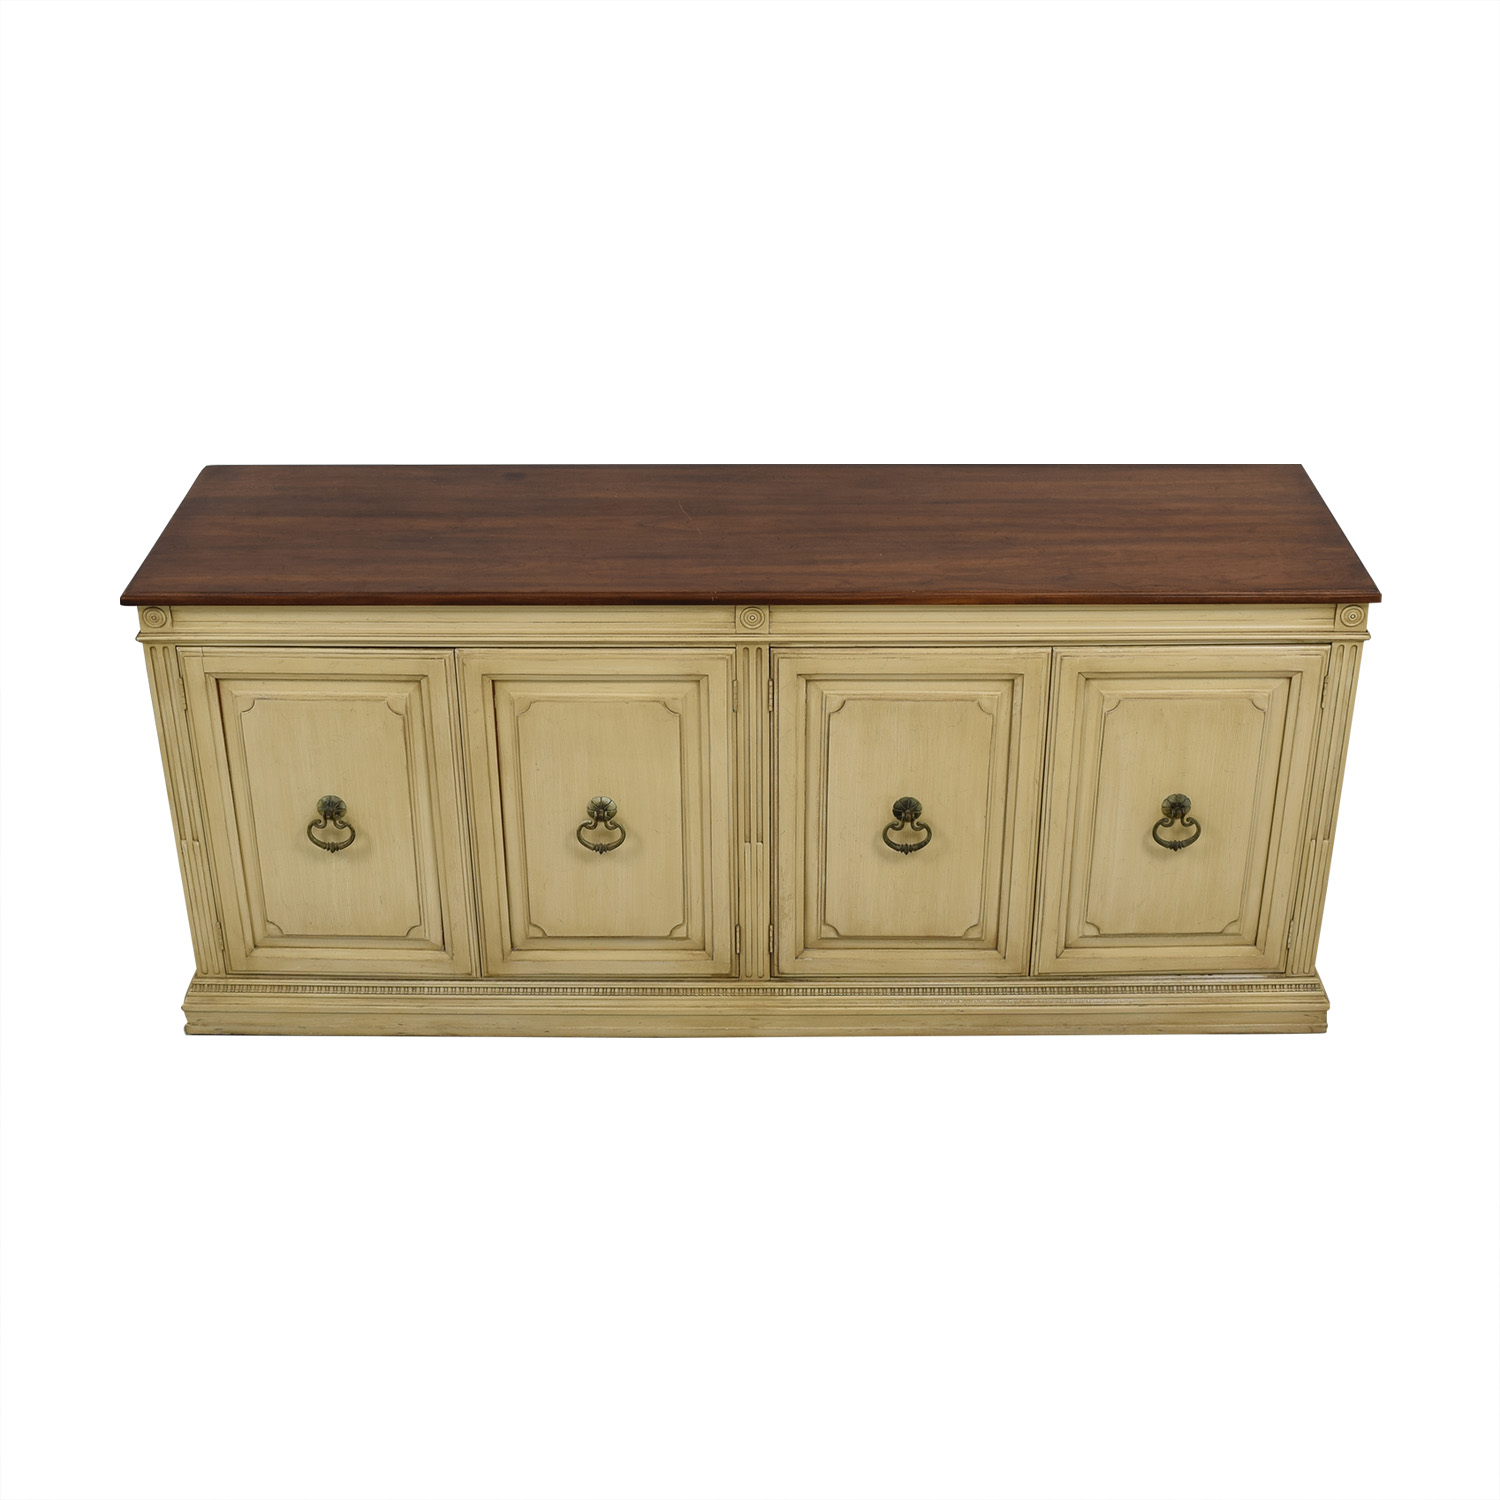 Davis Cabinet Company Davis Cabinet Company Sideboard for sale